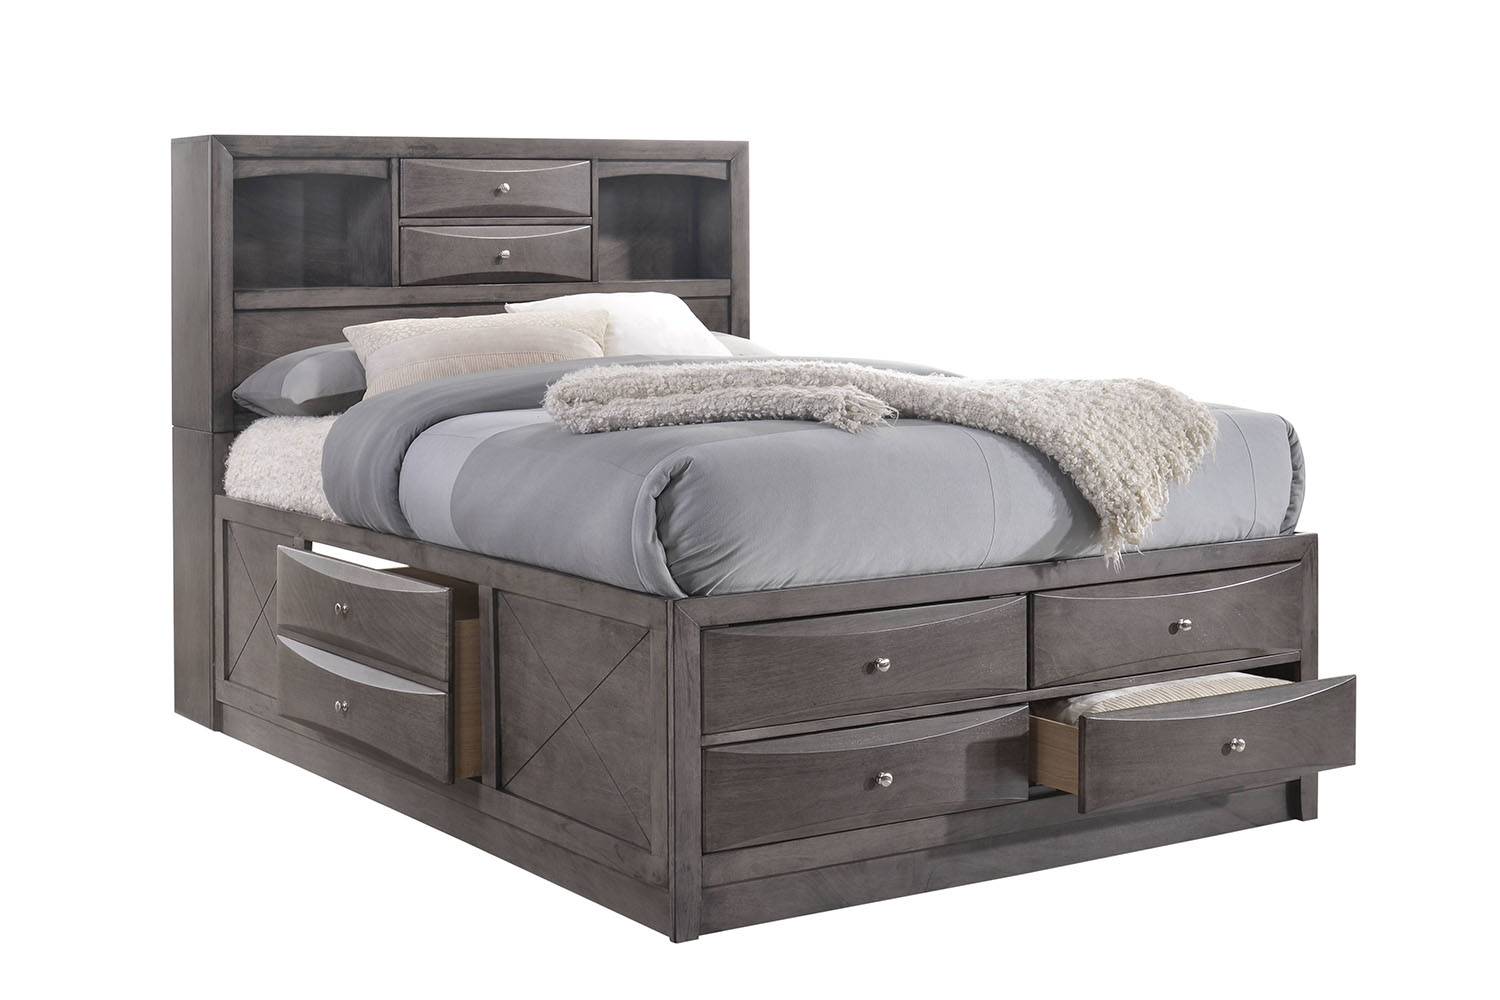 Storage Beds Edmonton West Coast S Home Furniture Store Mor Furniture For Less